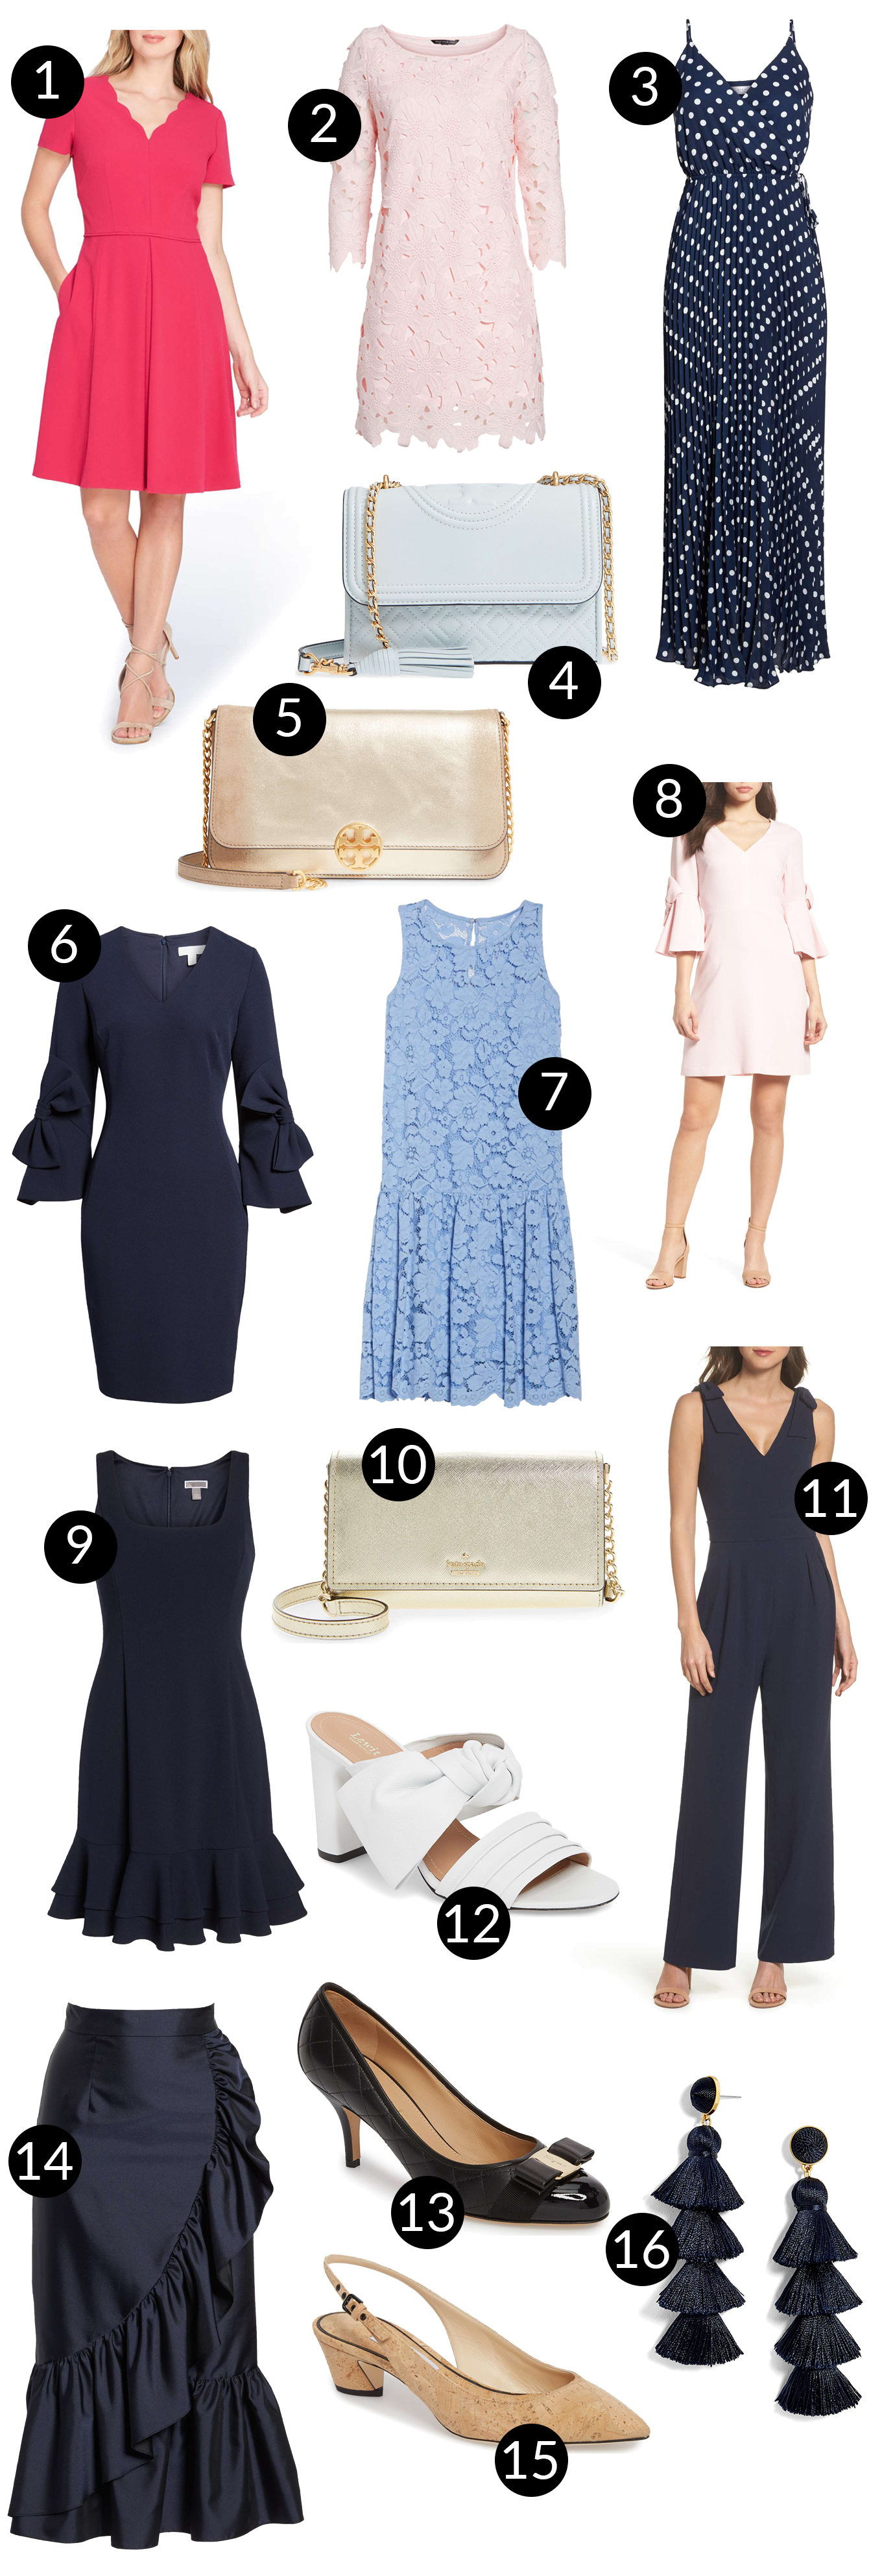 The Ultimate Guide to the Nordstrom Sale: What to Buy